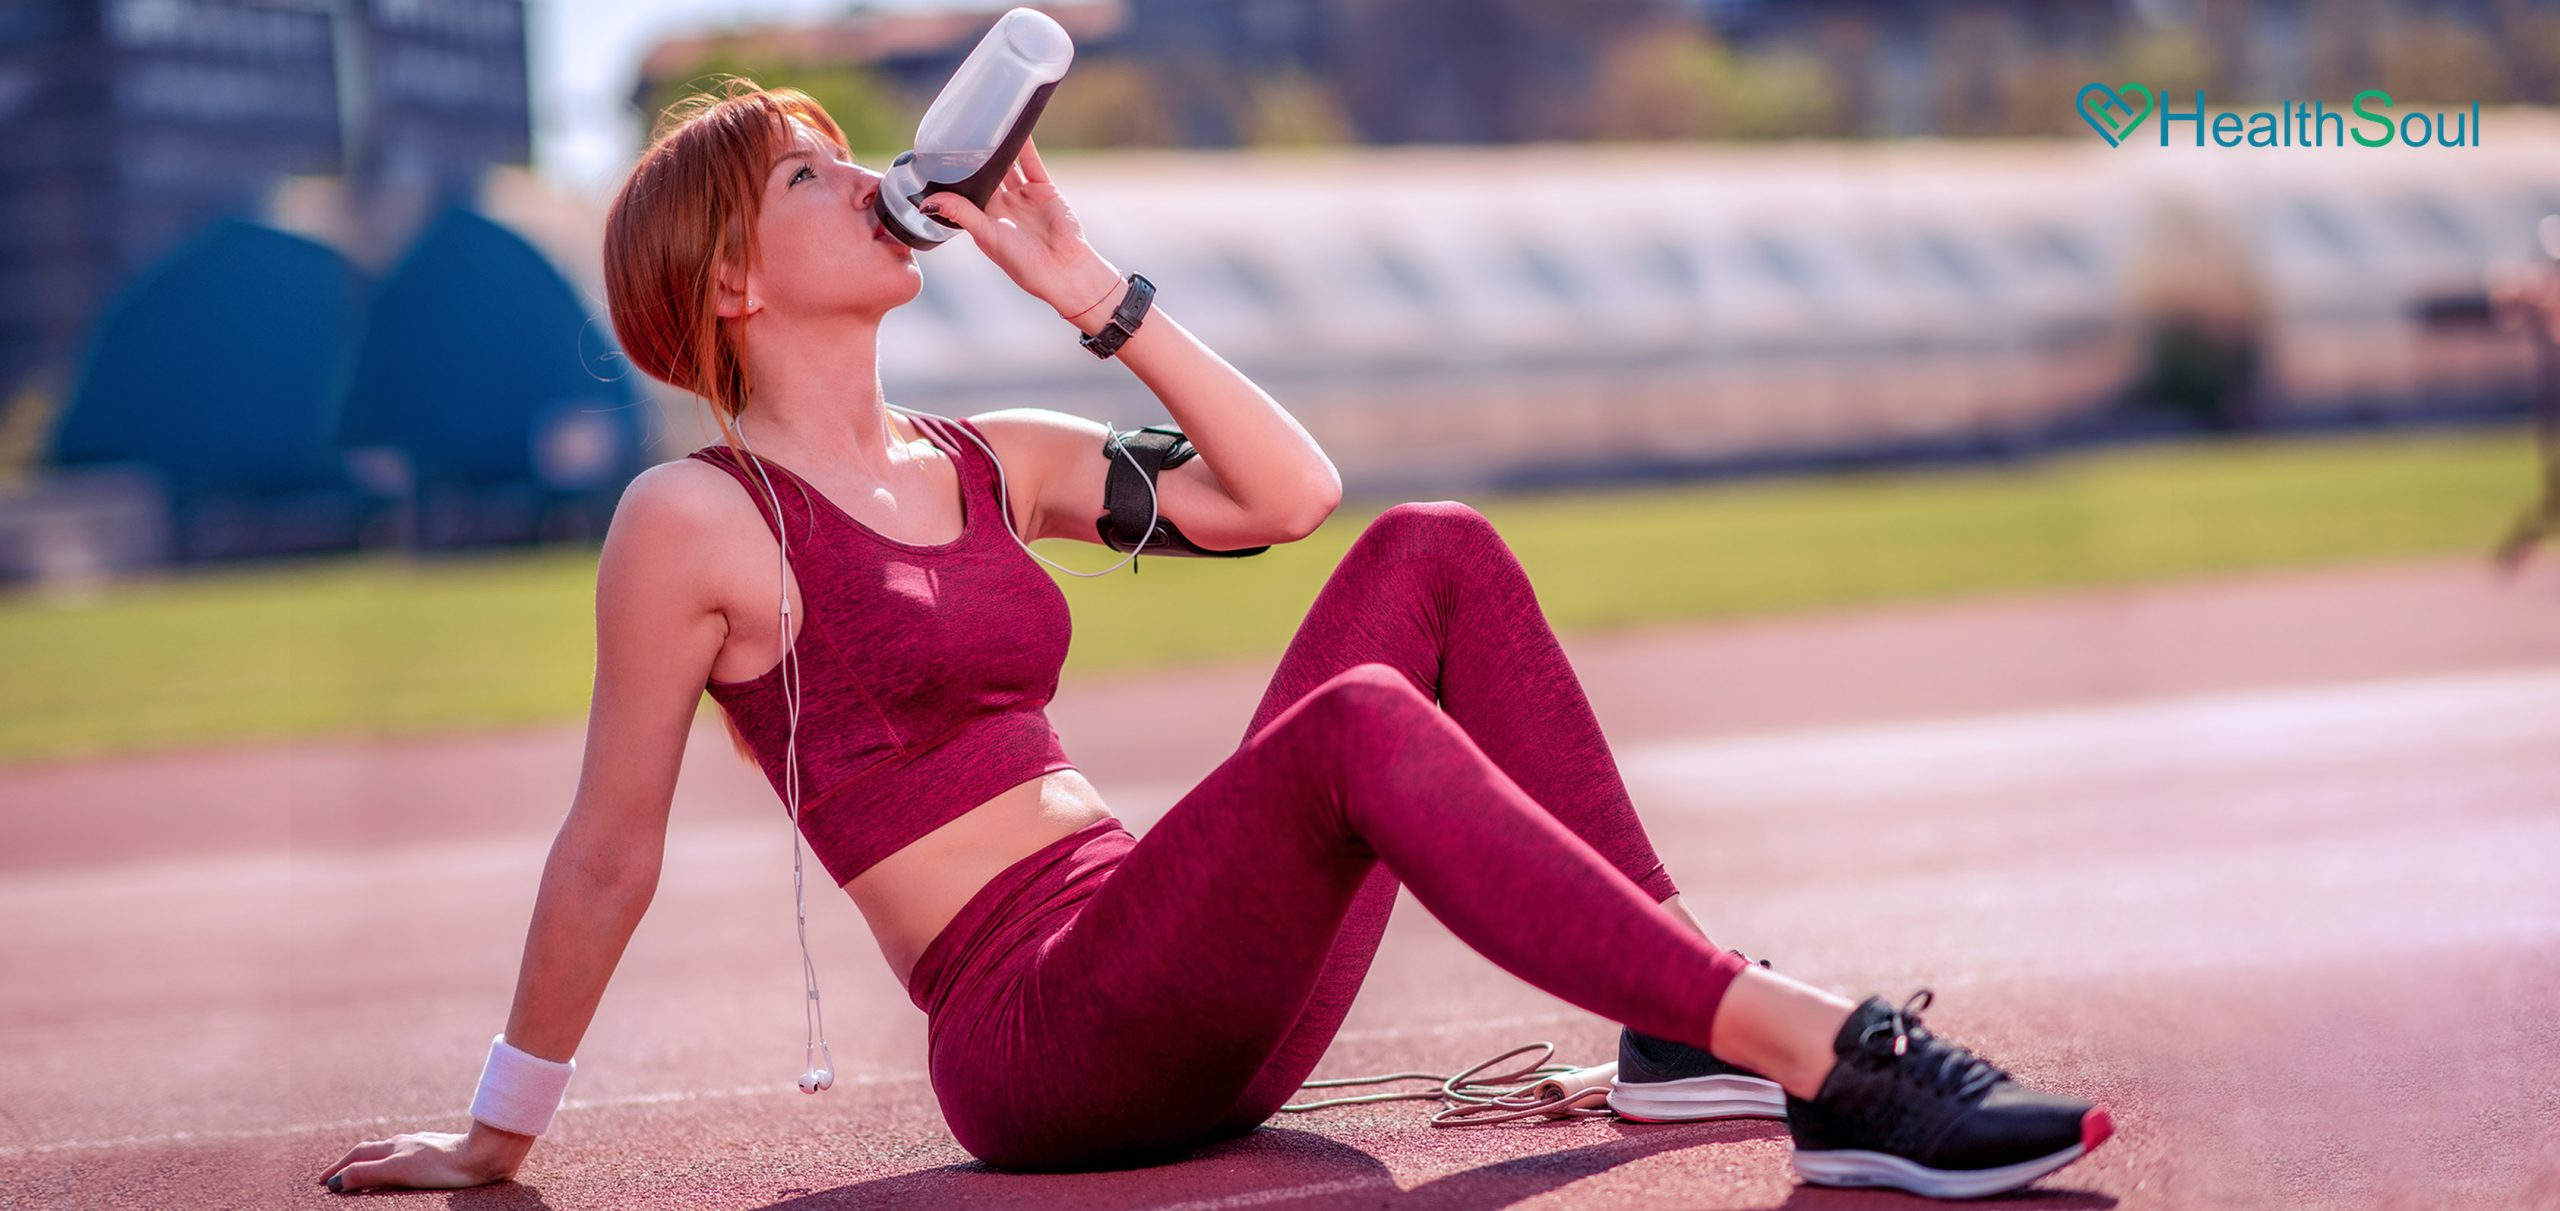 Want to Stay Healthy This Summer? Four Tips For Avoiding Seasonal Health Problems   HealthSoul